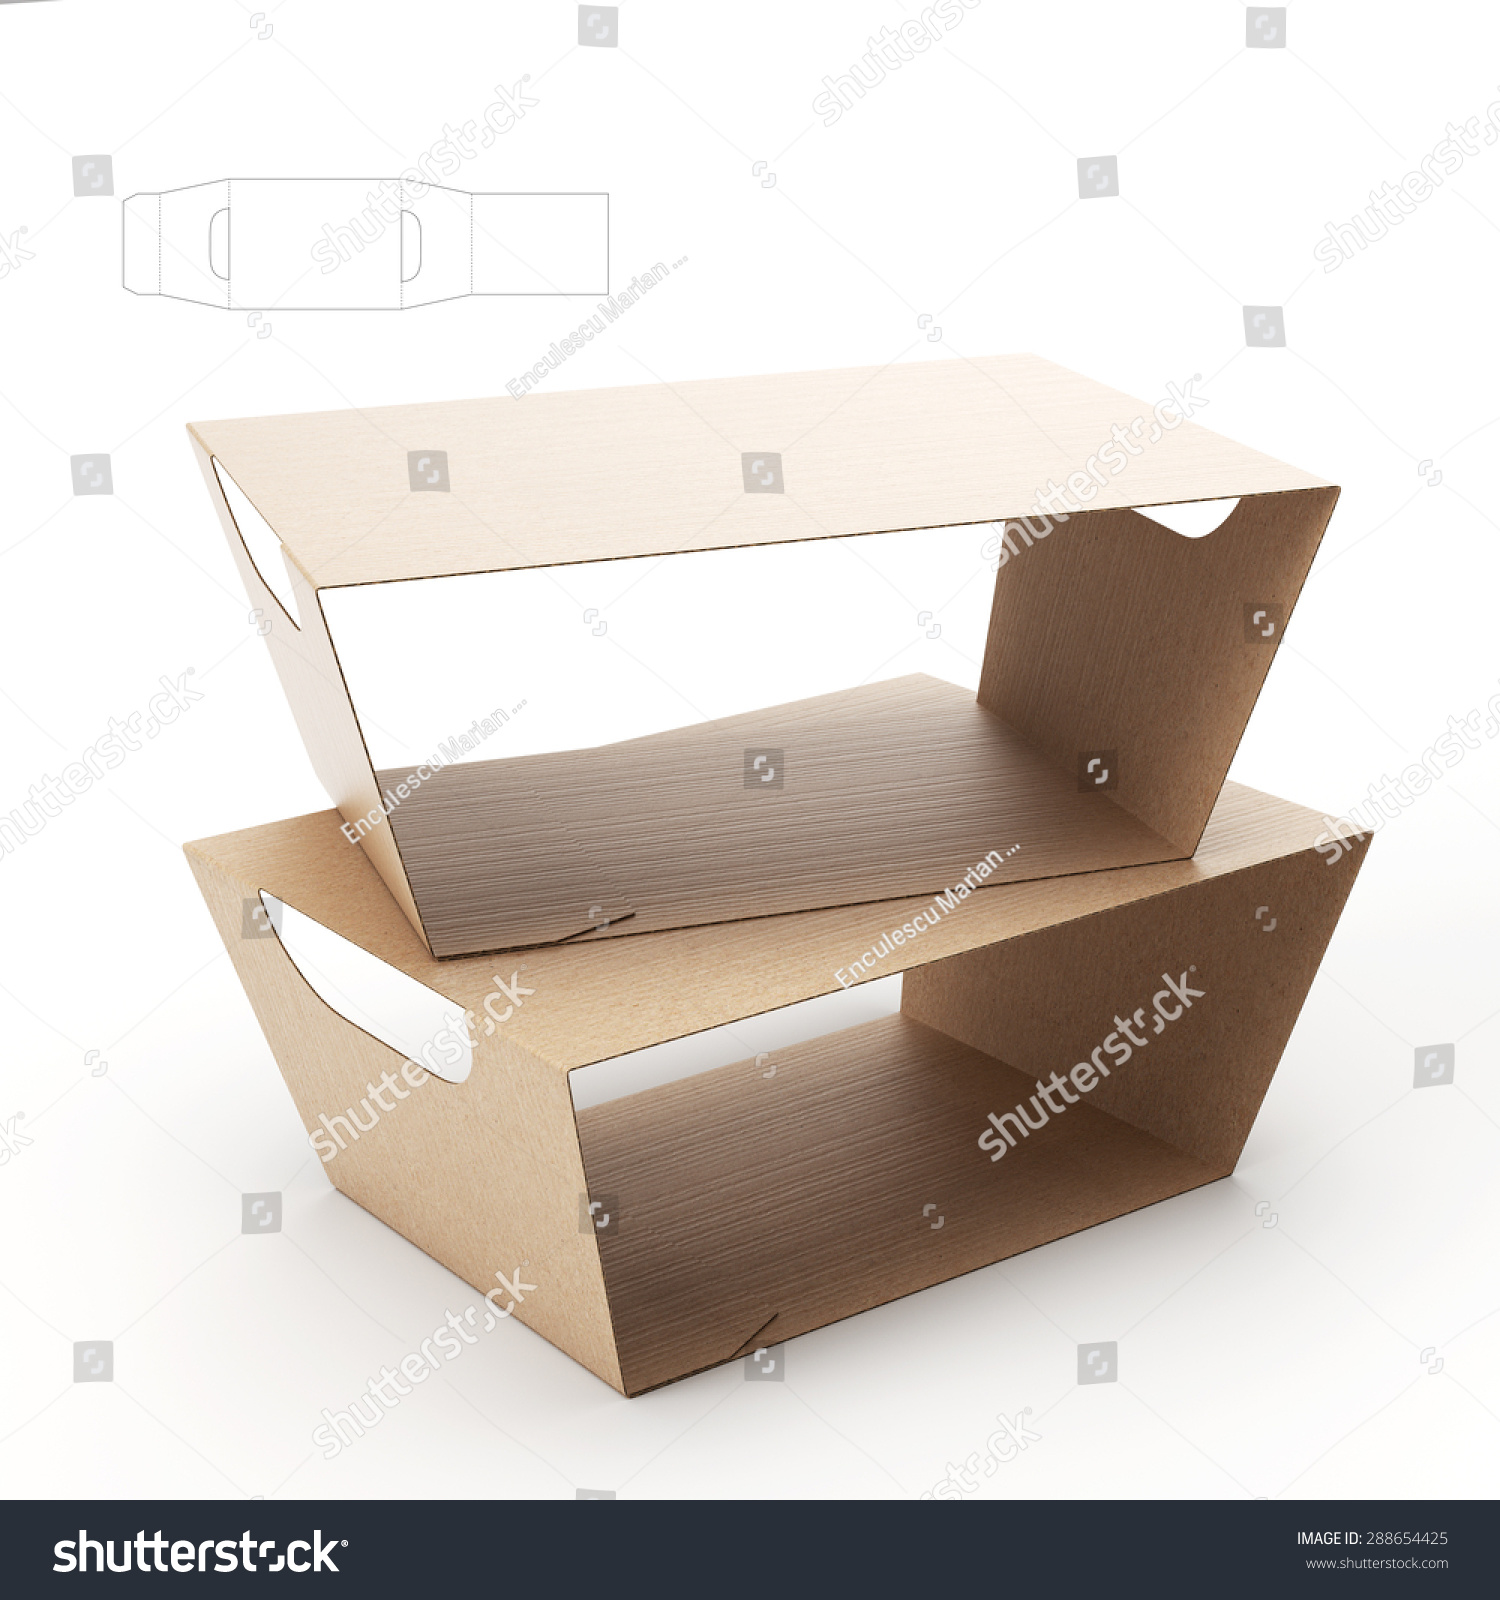 empty food tray sleeve packaging handles stock illustration 288654425 shutterstock. Black Bedroom Furniture Sets. Home Design Ideas